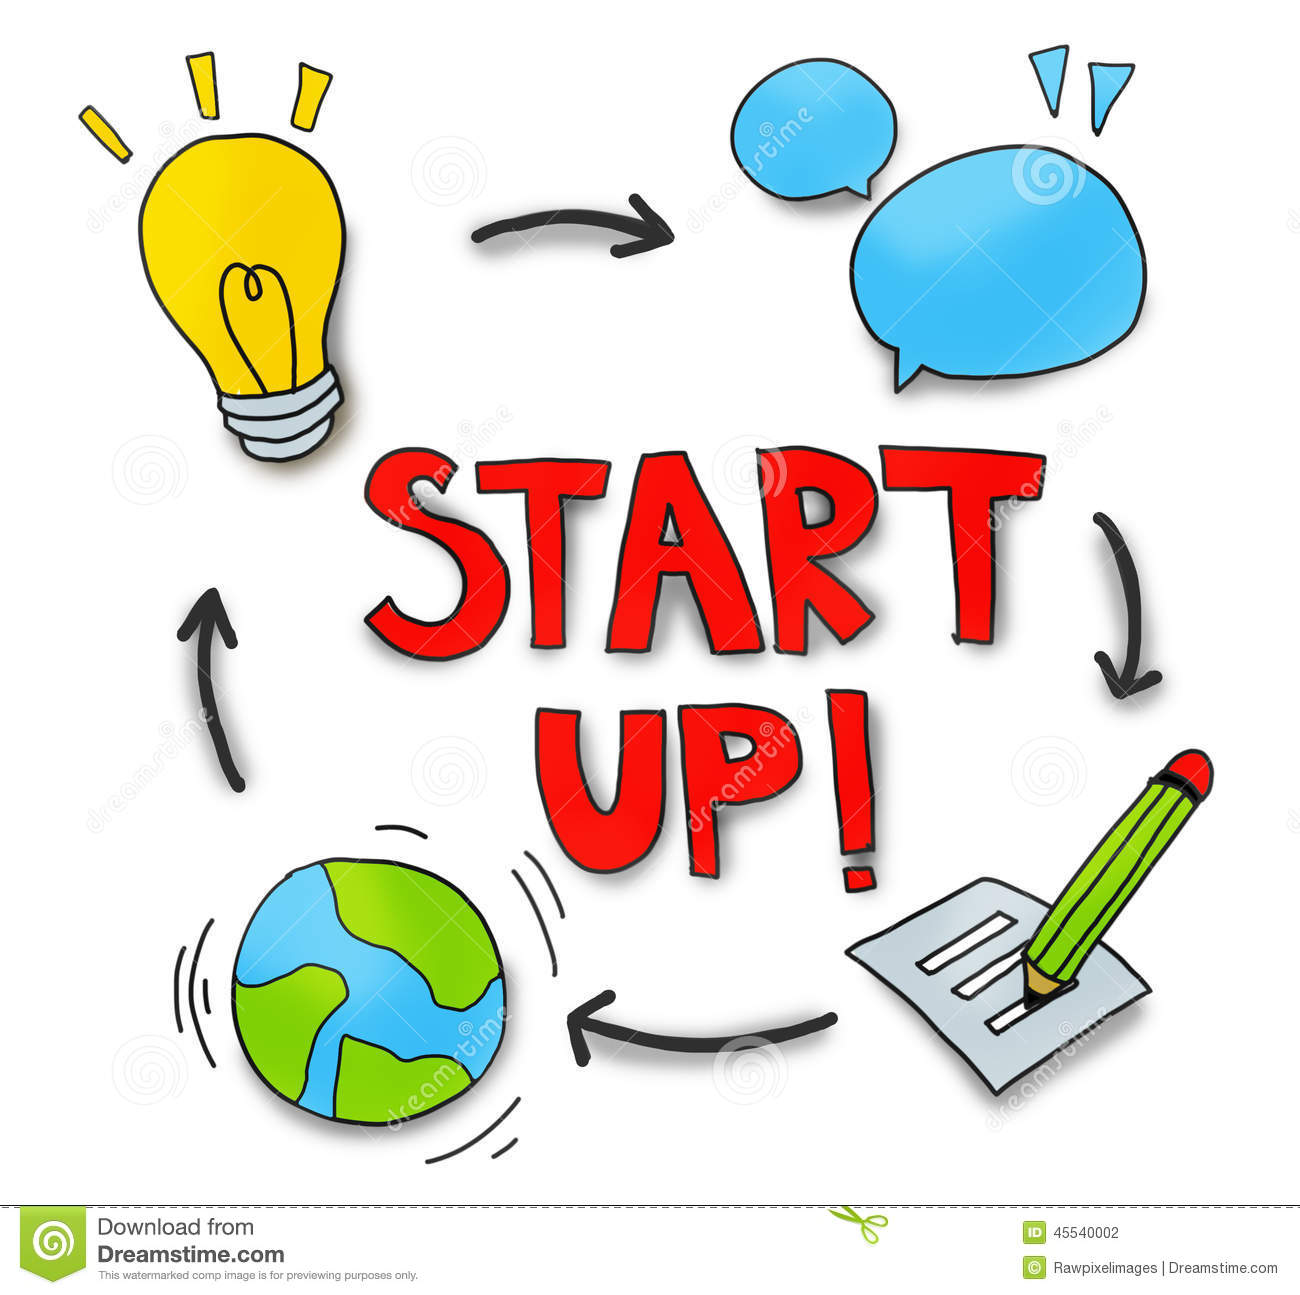 how to sell a startup business